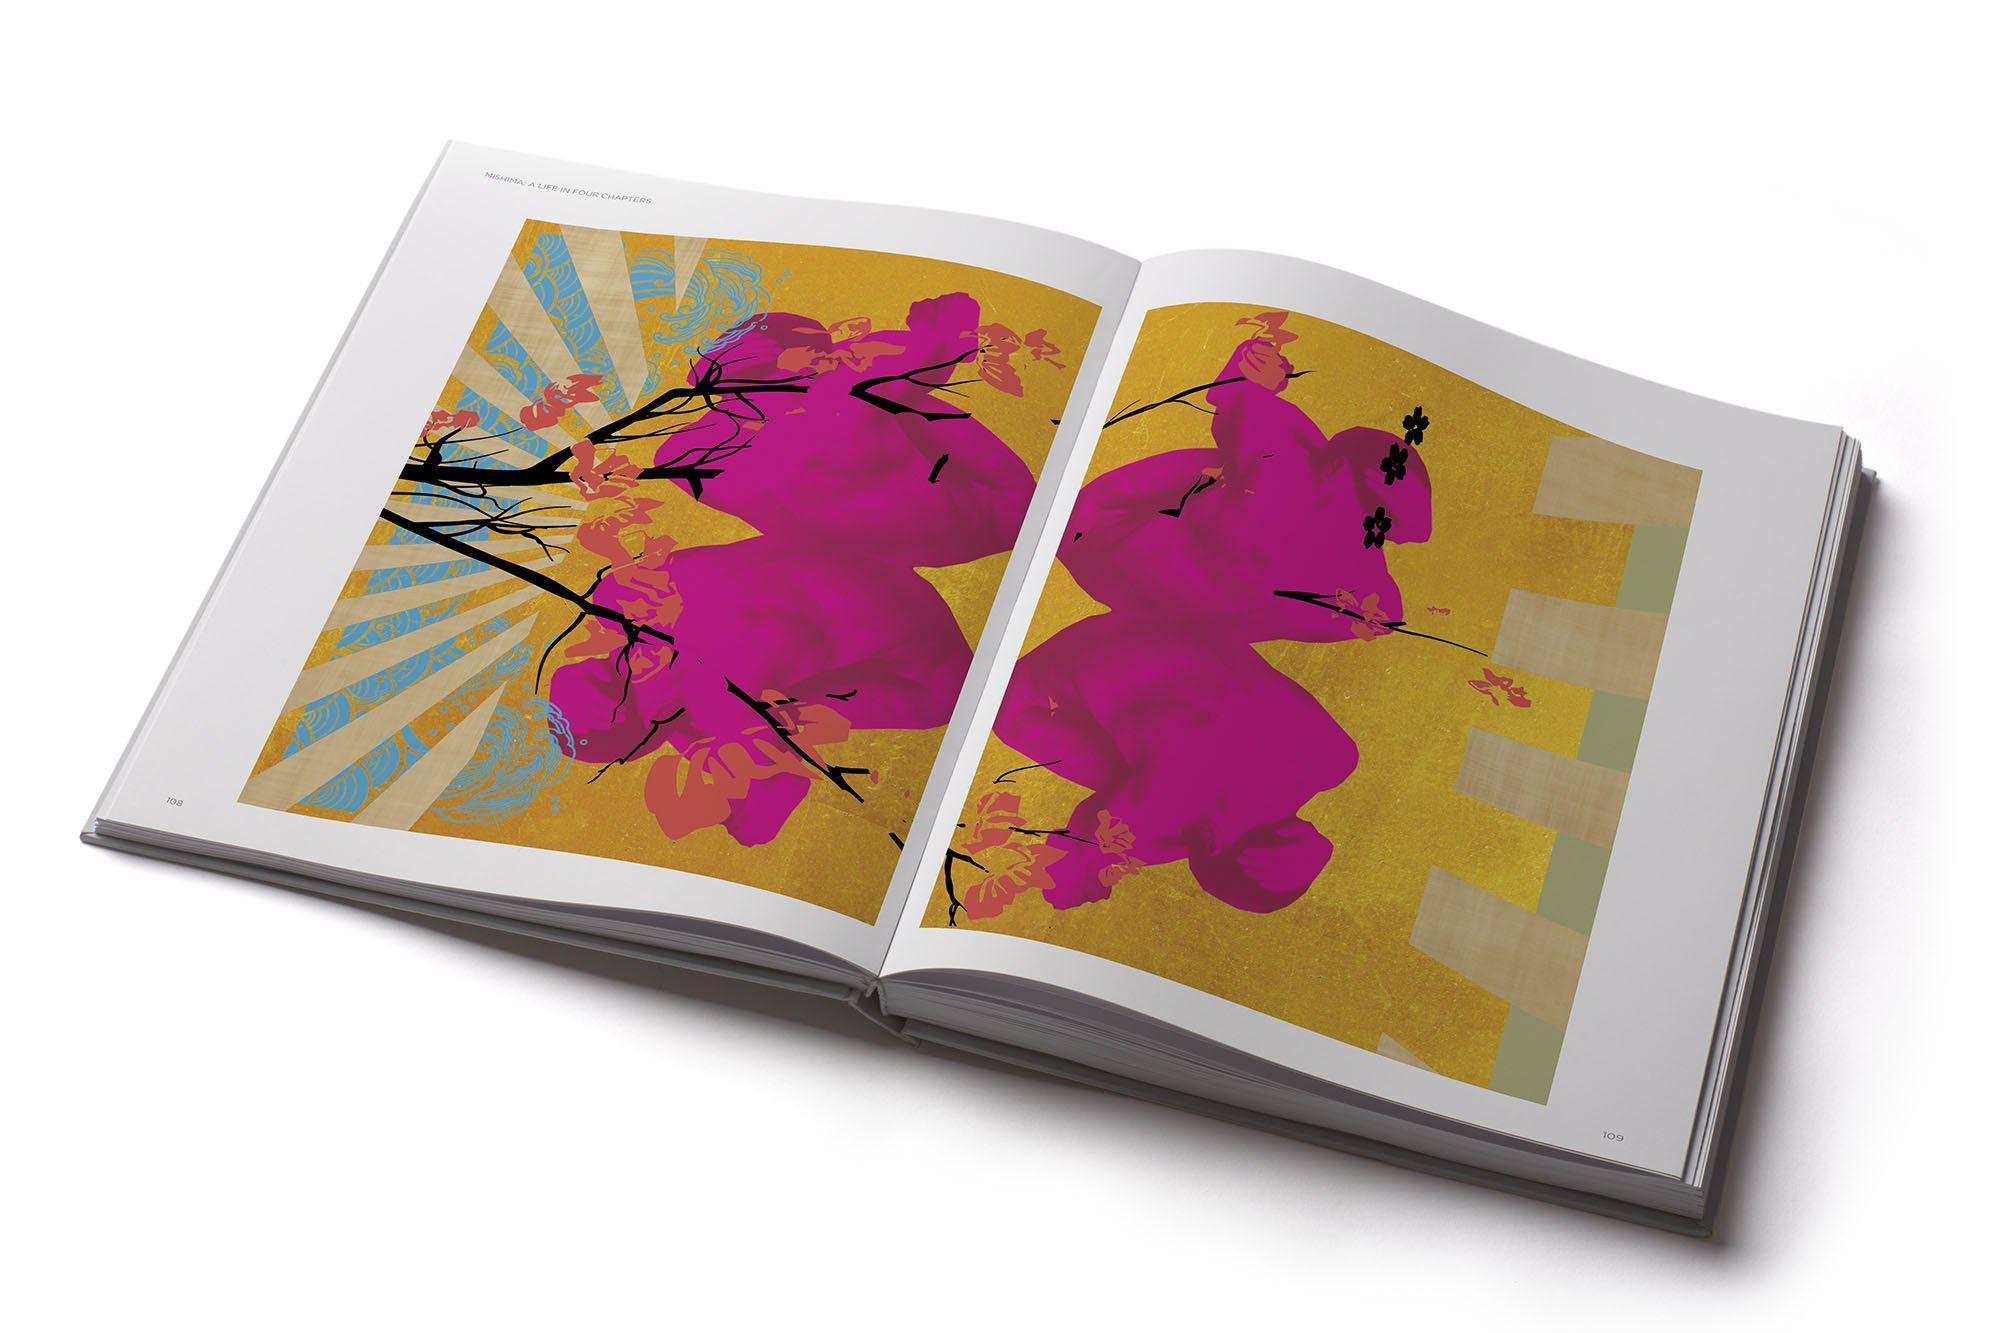 Gift Idea Buy the Criterion Designs Coffee Table Book for a Movie